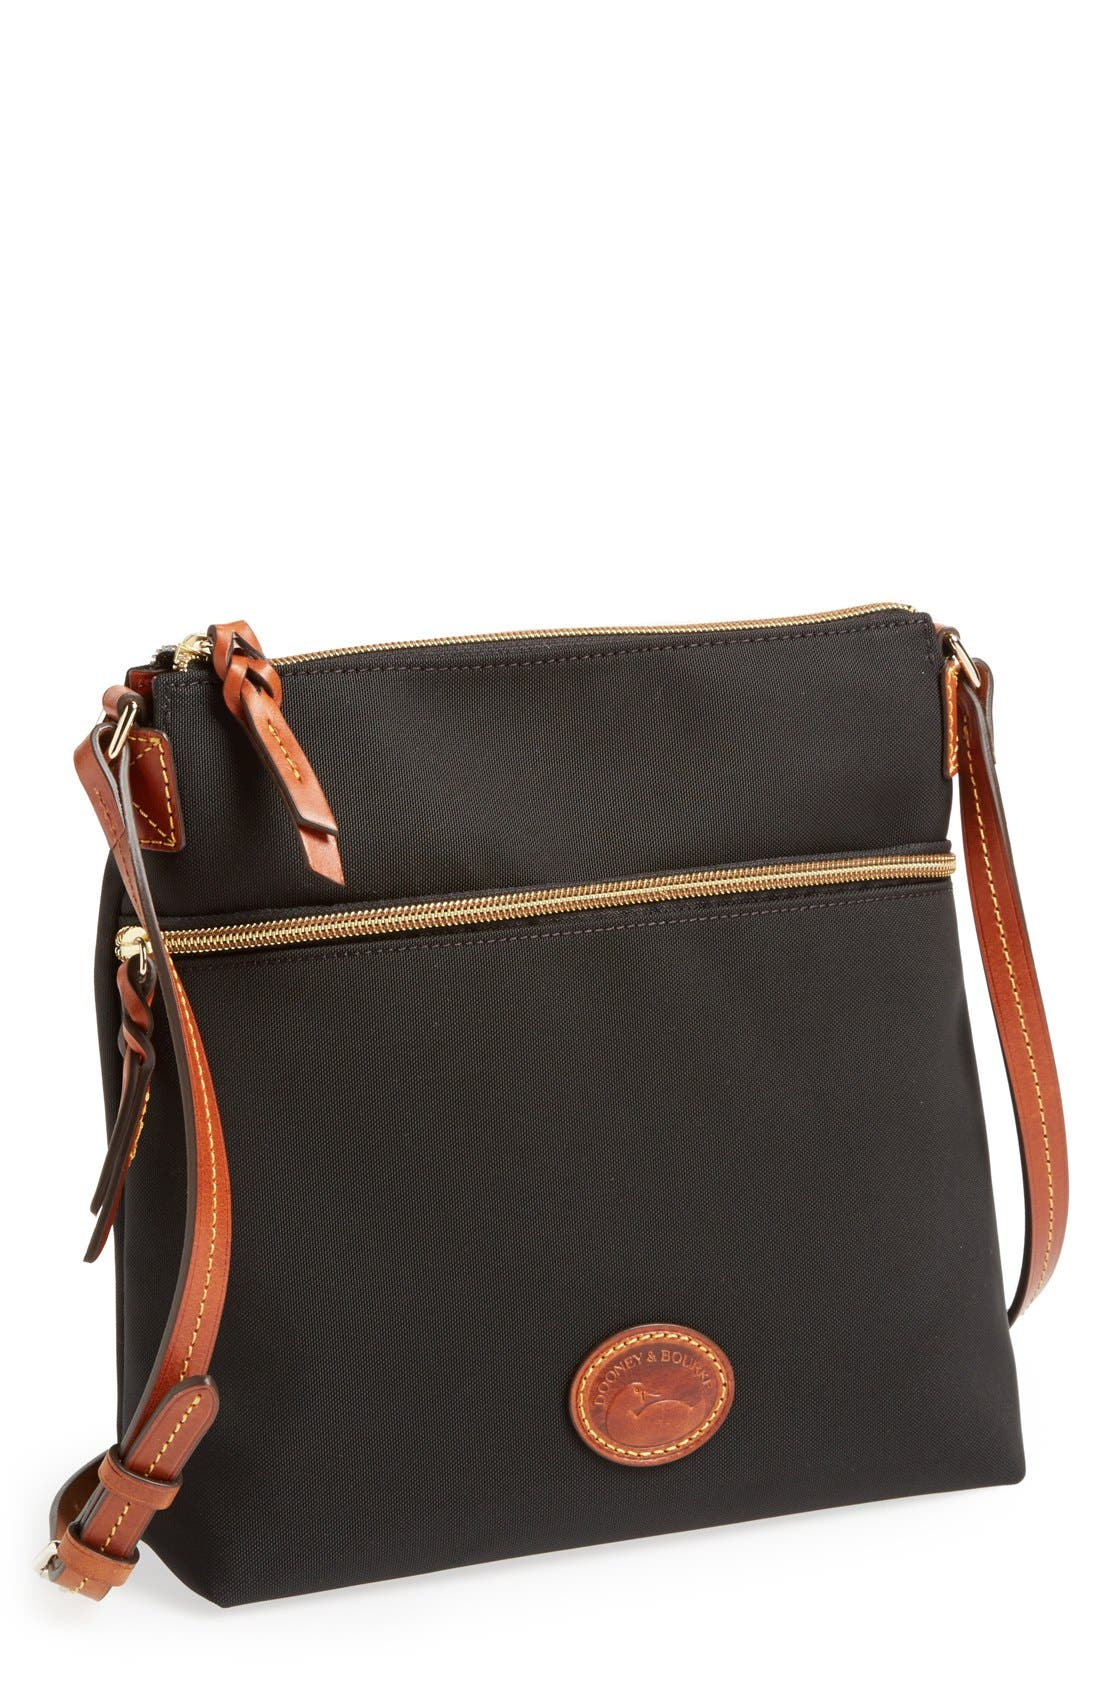 Alternate Image 1 Selected - Dooney & Bourke Crossbody Bag